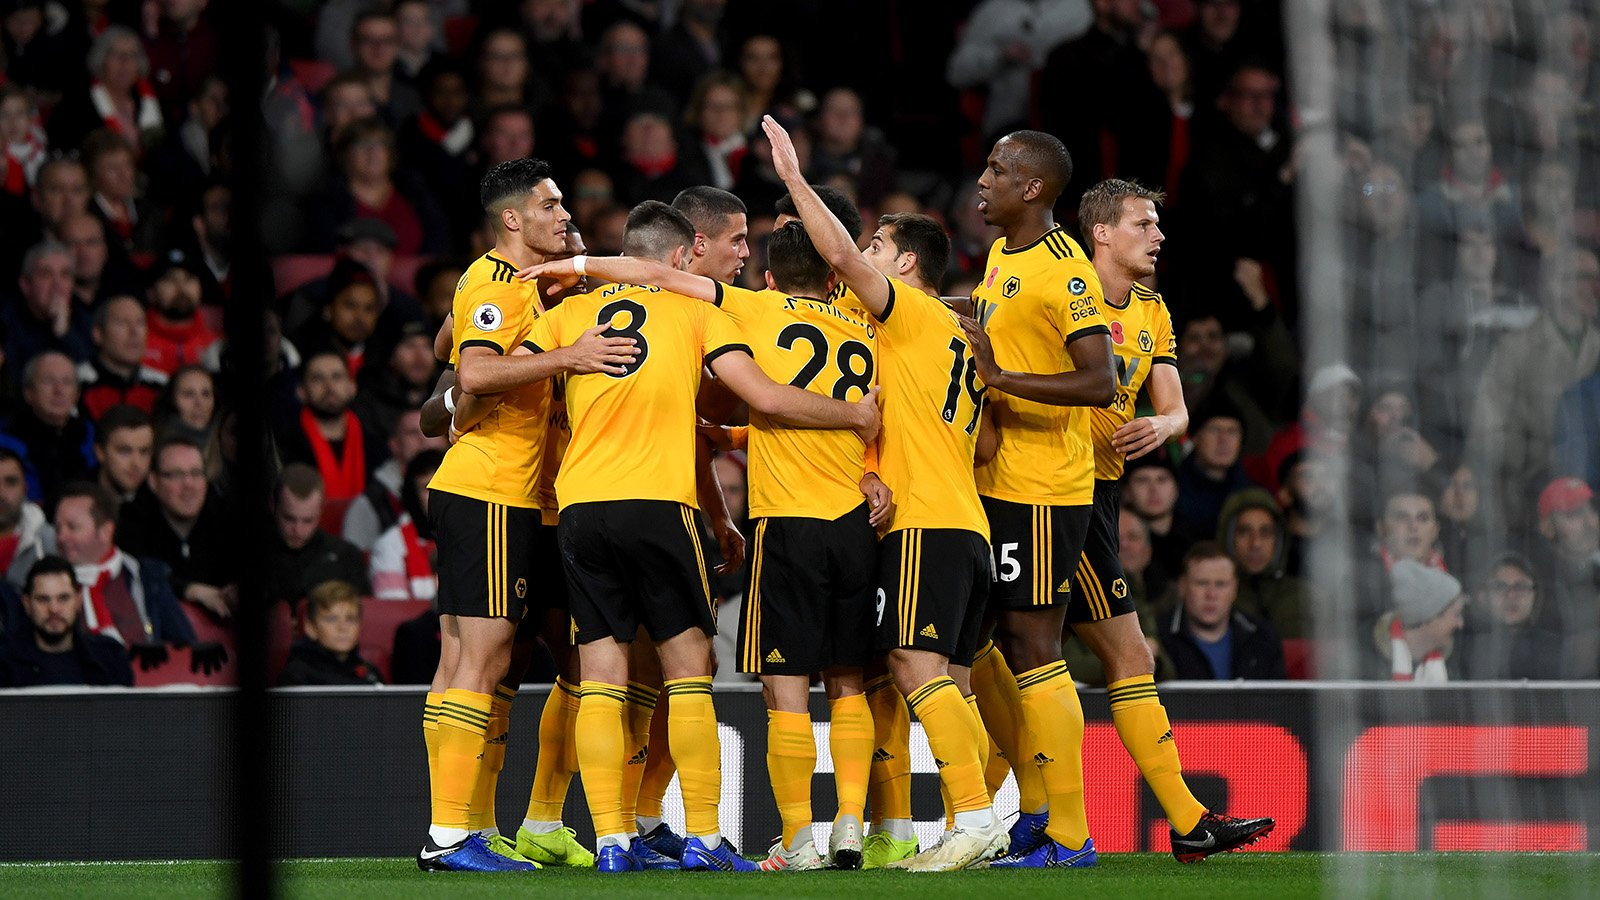 All the key action from Wolves' 1-1 @premierleague draw at @Arsenal on Sunday afternoon. #ARSWOL   🎥⚽️ https://t.co/V9b0S9HXmv